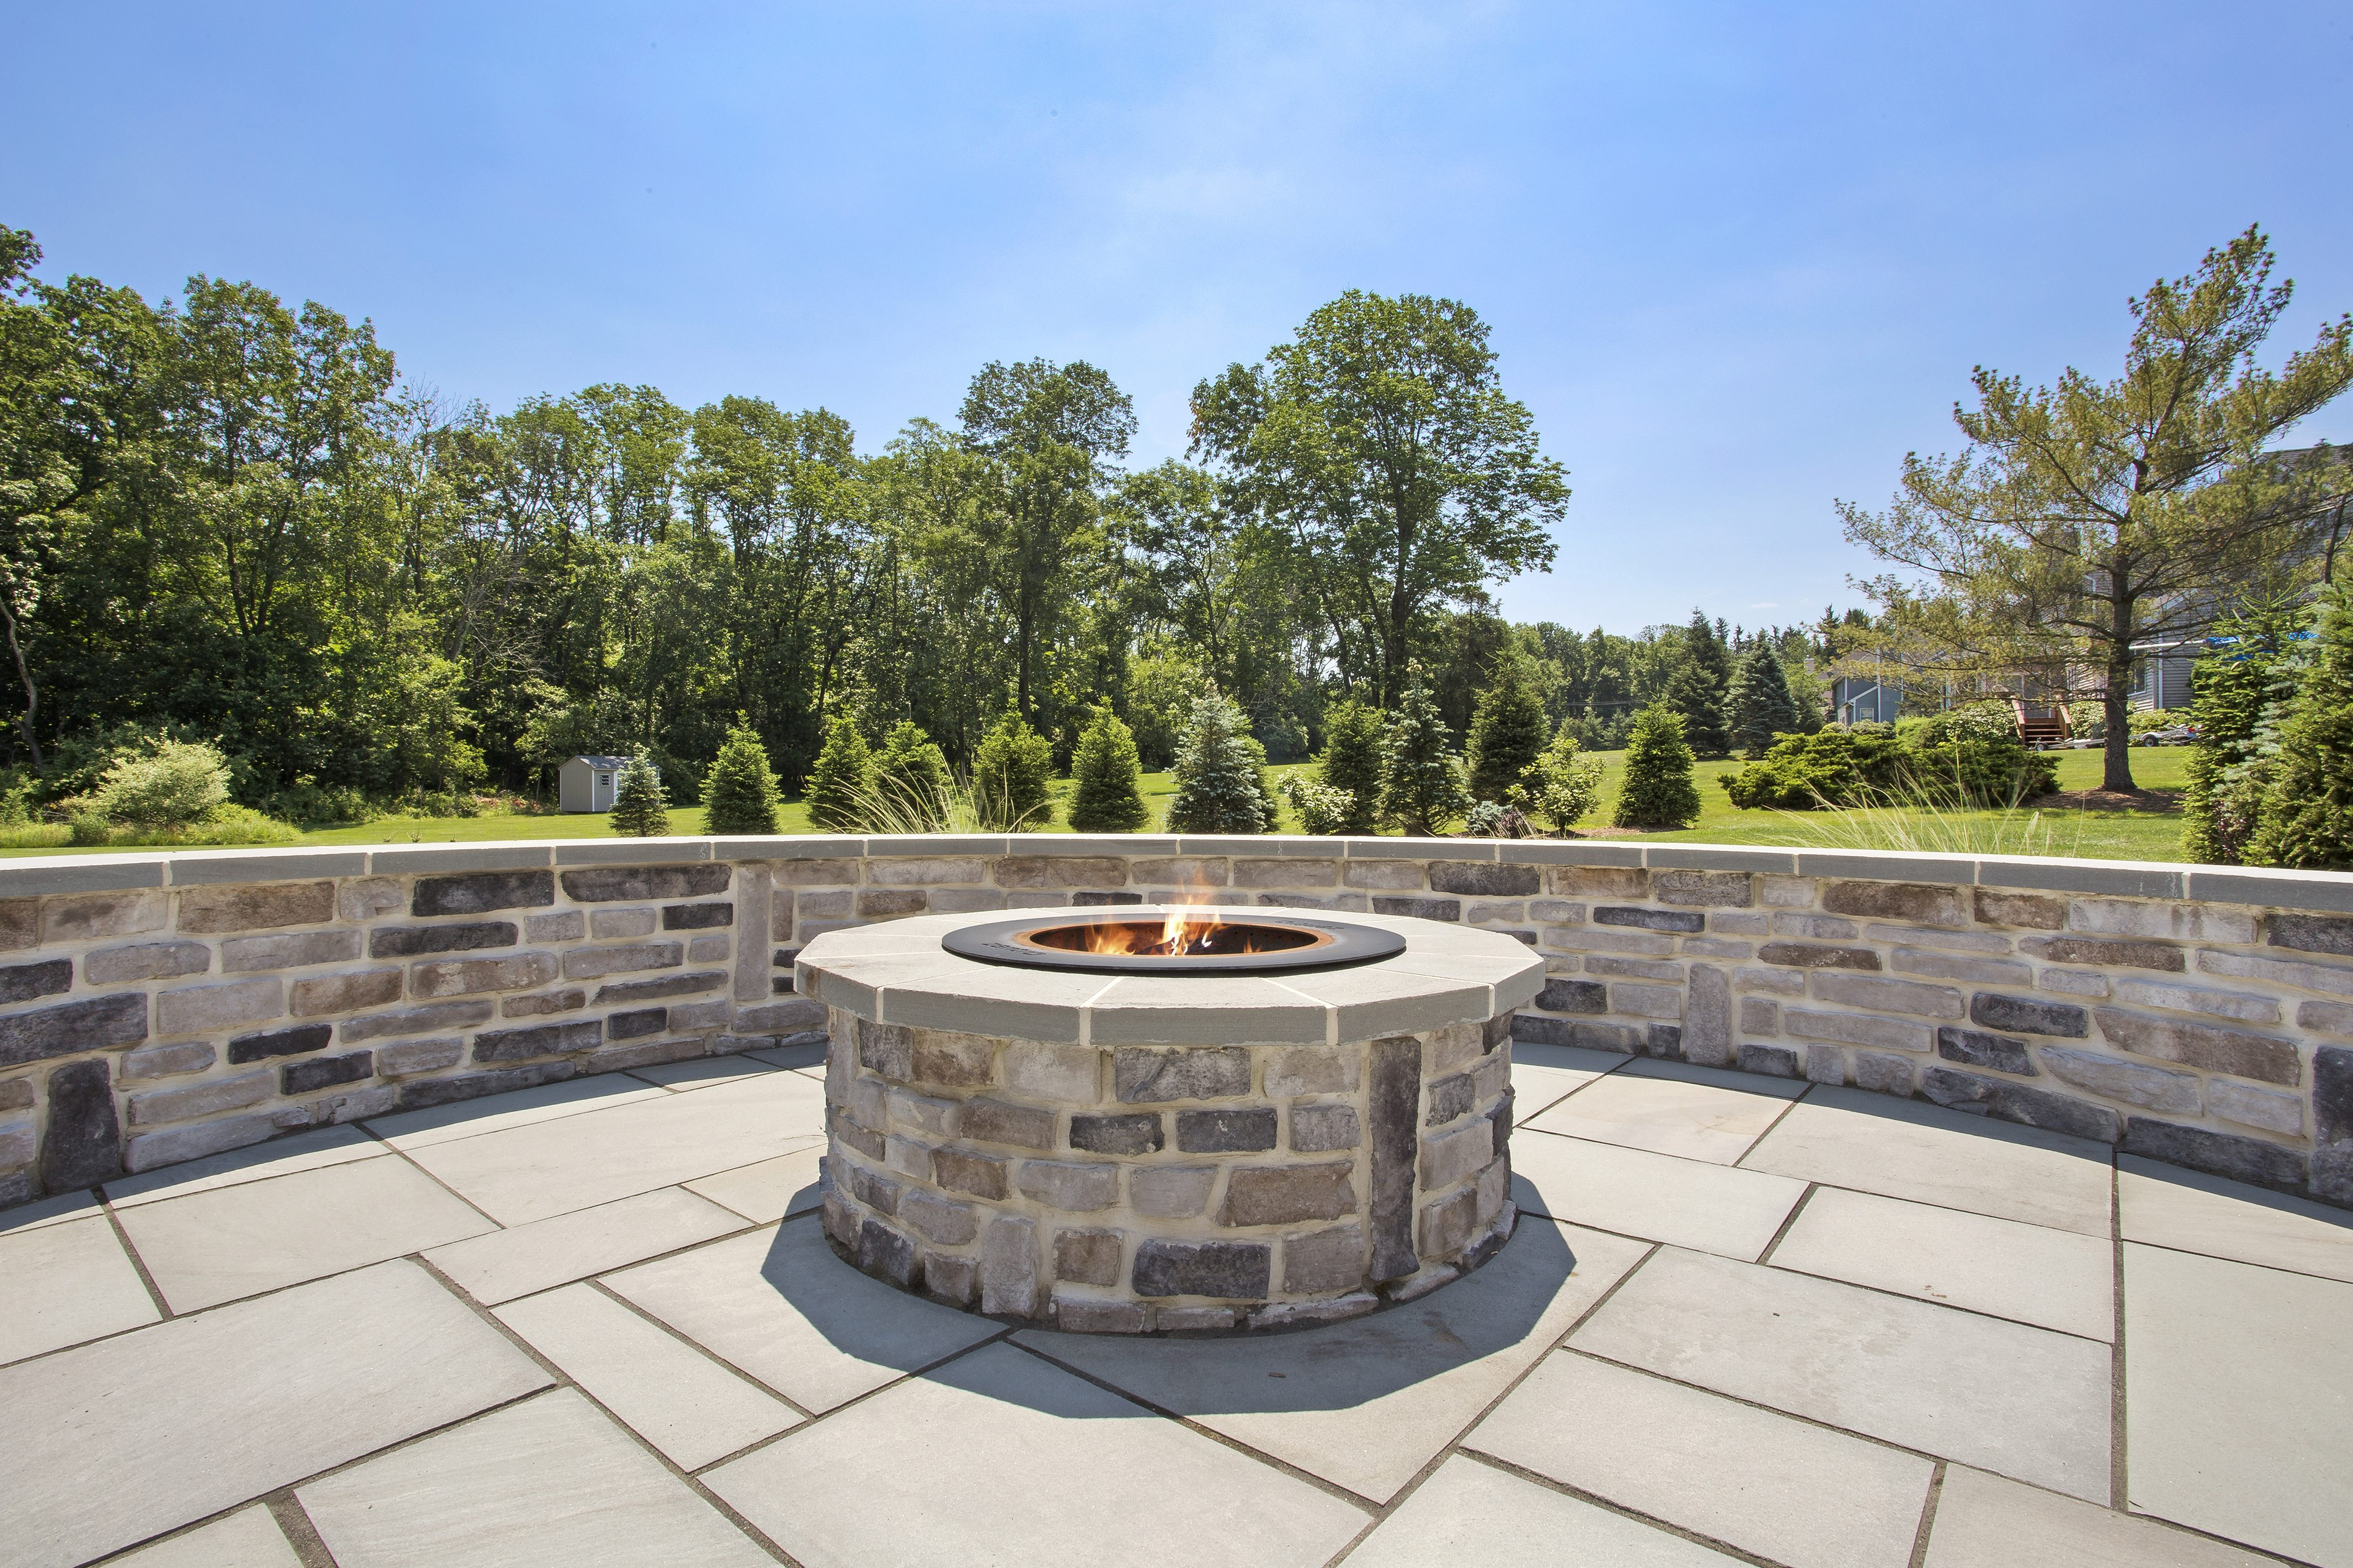 Outdoor Fireplace or Fire Pit: Pros and Cons for Union County NJ